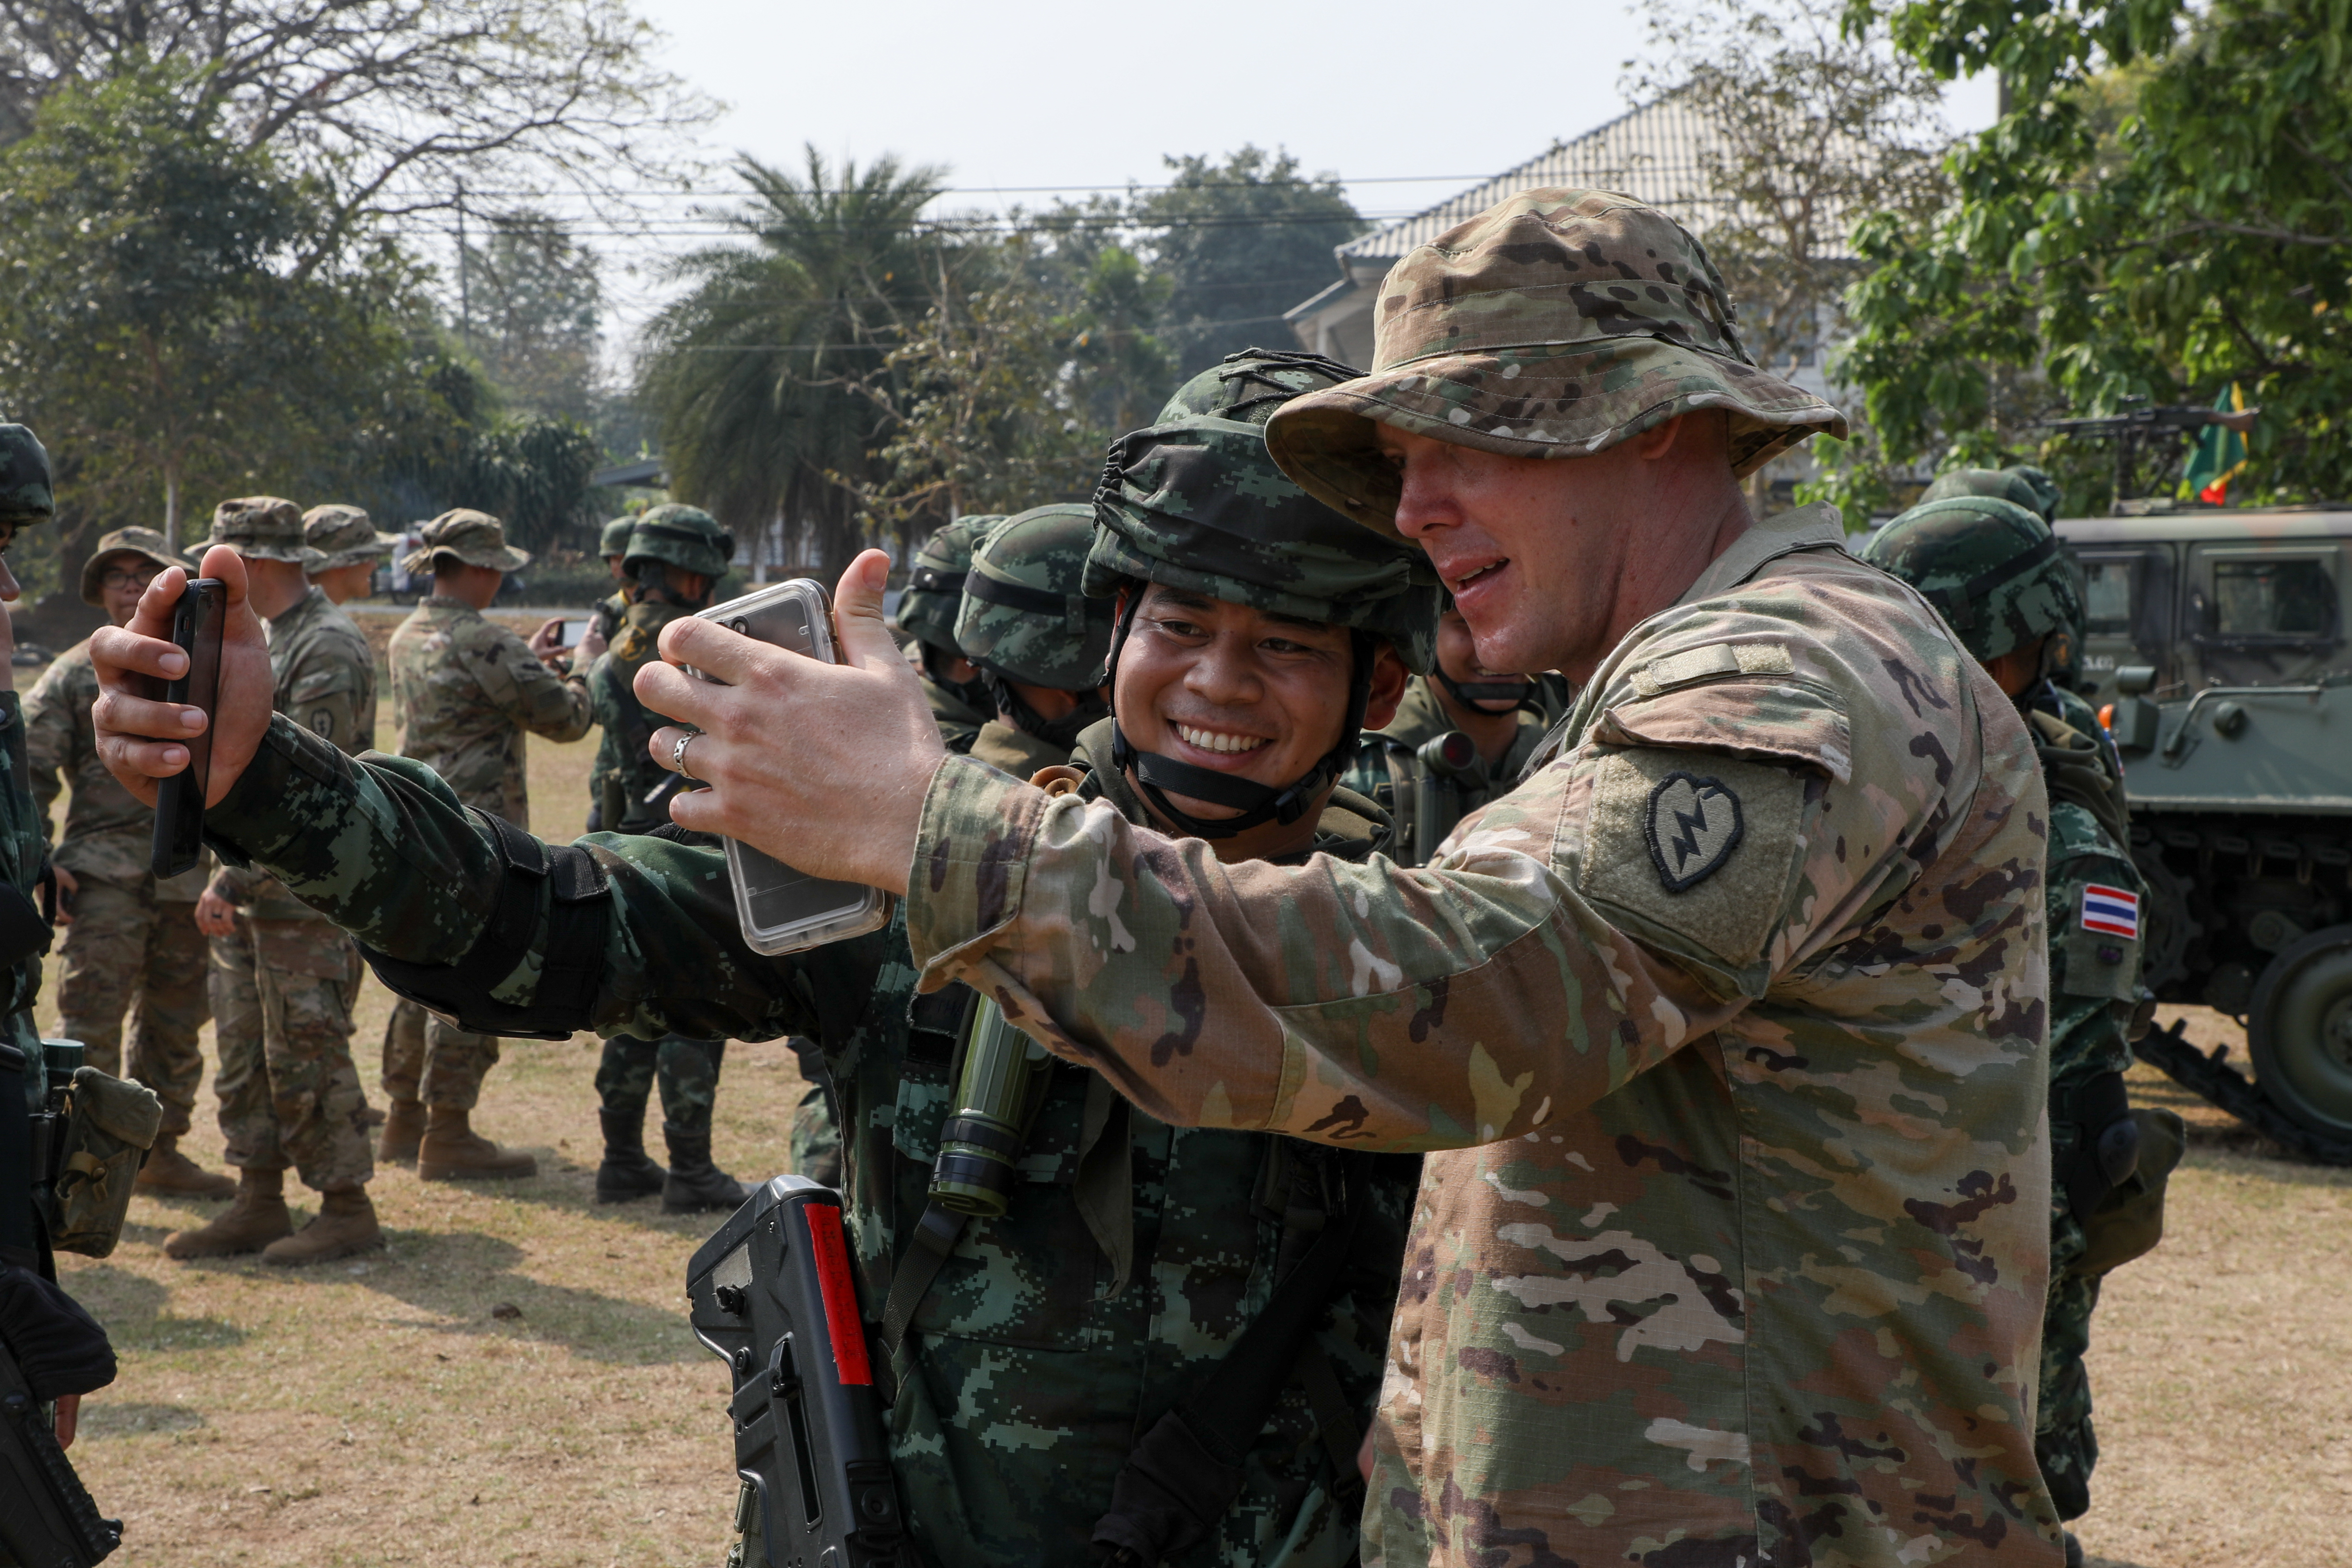 U.S. Army Sgt. William J. Cosgrove and Royal Thai Armed Forces Sgt. Maj. 3 Attaporn Uttarahong take a photo together during a break at the rehearsal for the Exercise Cobra Gold 18 opening ceremony on Camp Friendship, Thailand, Feb. 9, 2018. (Staff Sgt. David N. Beckstrom/Army)